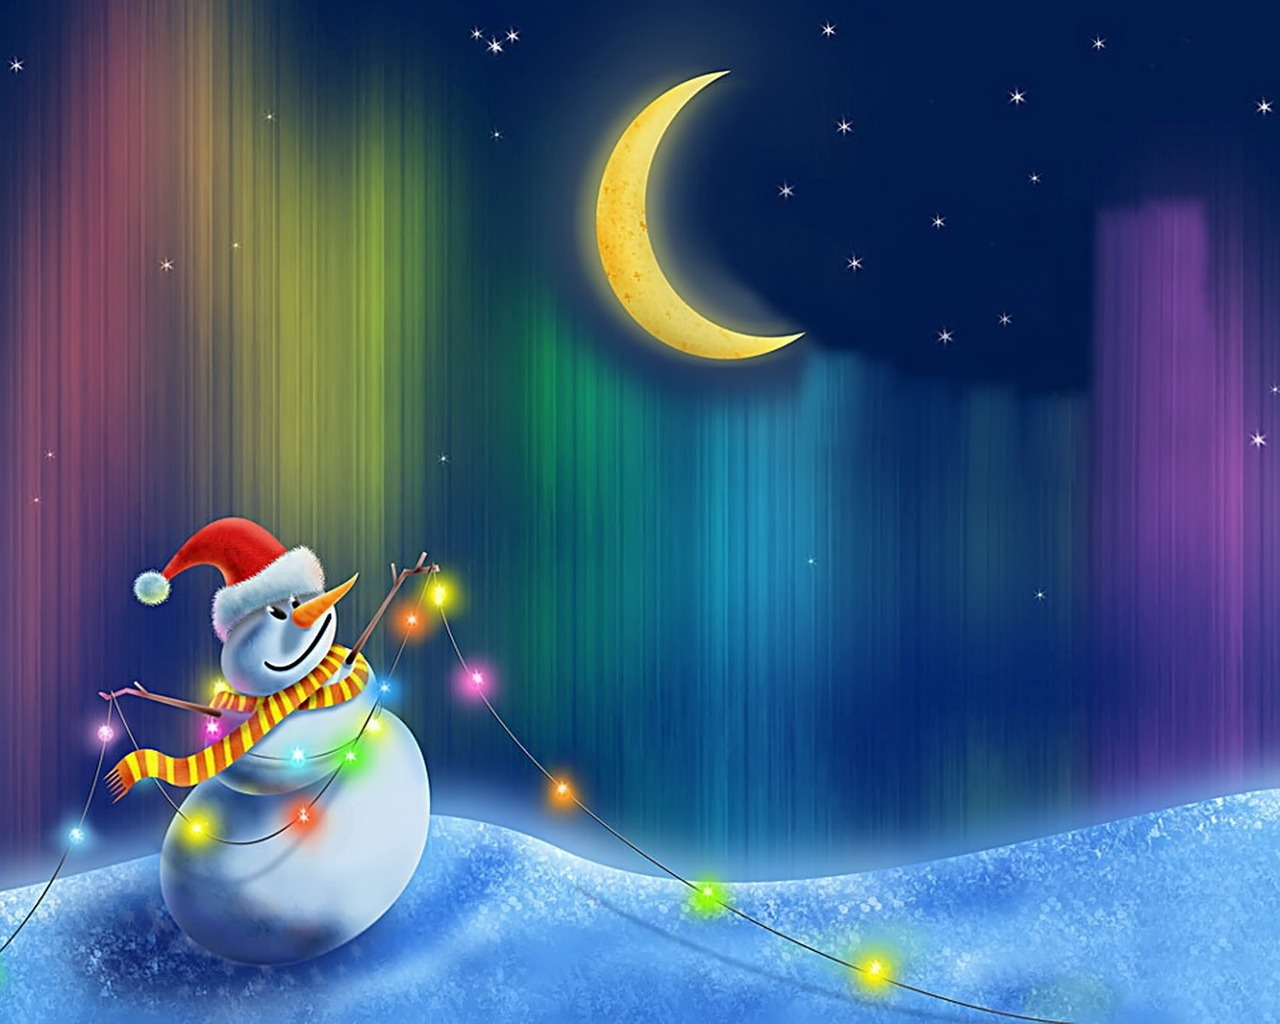 happy snowman wallpaper christmas holidays wallpapers in jpg format